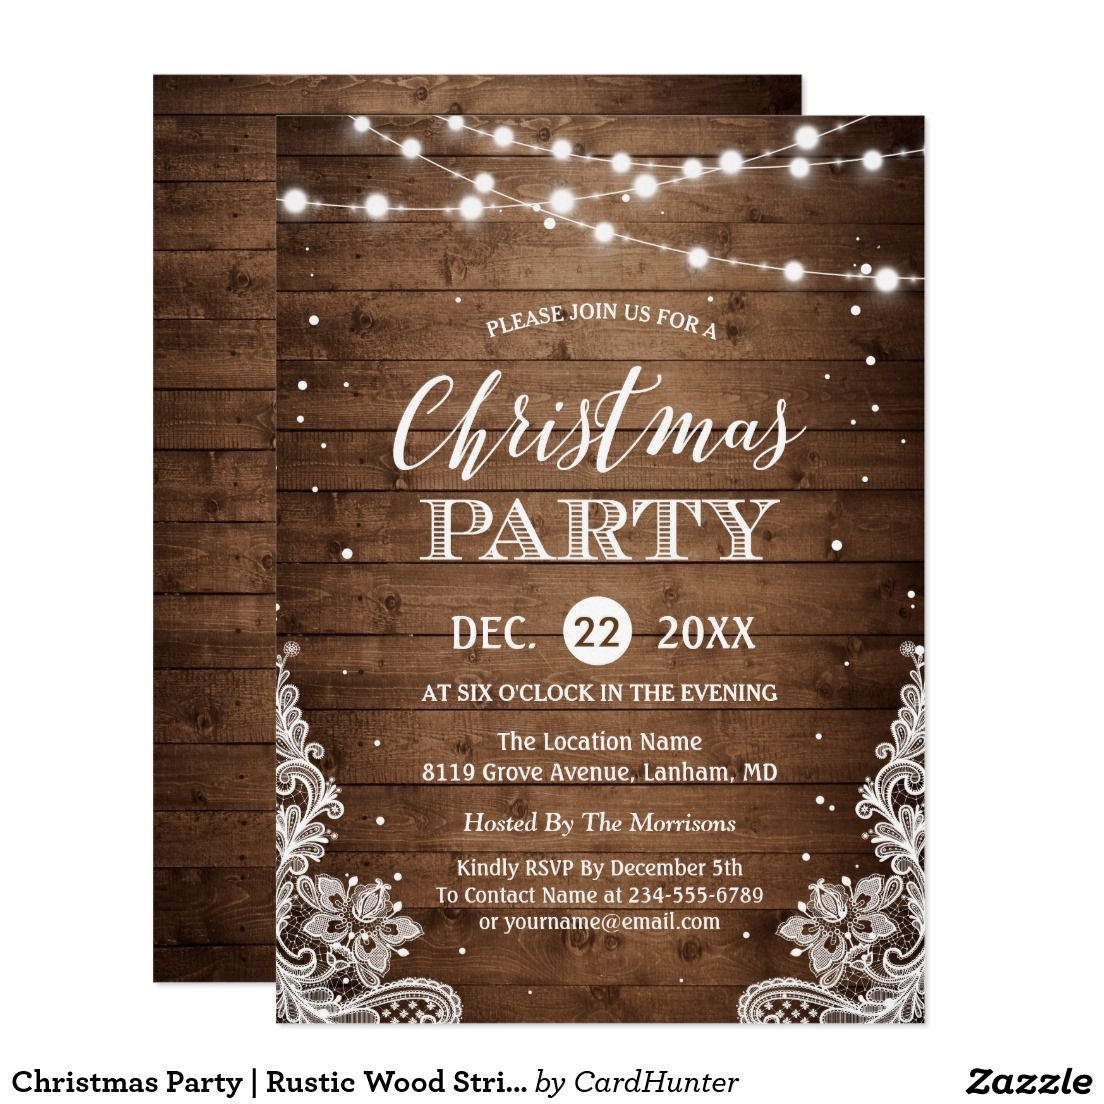 Christmas party rustic wood twinkle lights lace card pinterest christmas party rustic wood string lights lace card m4hsunfo